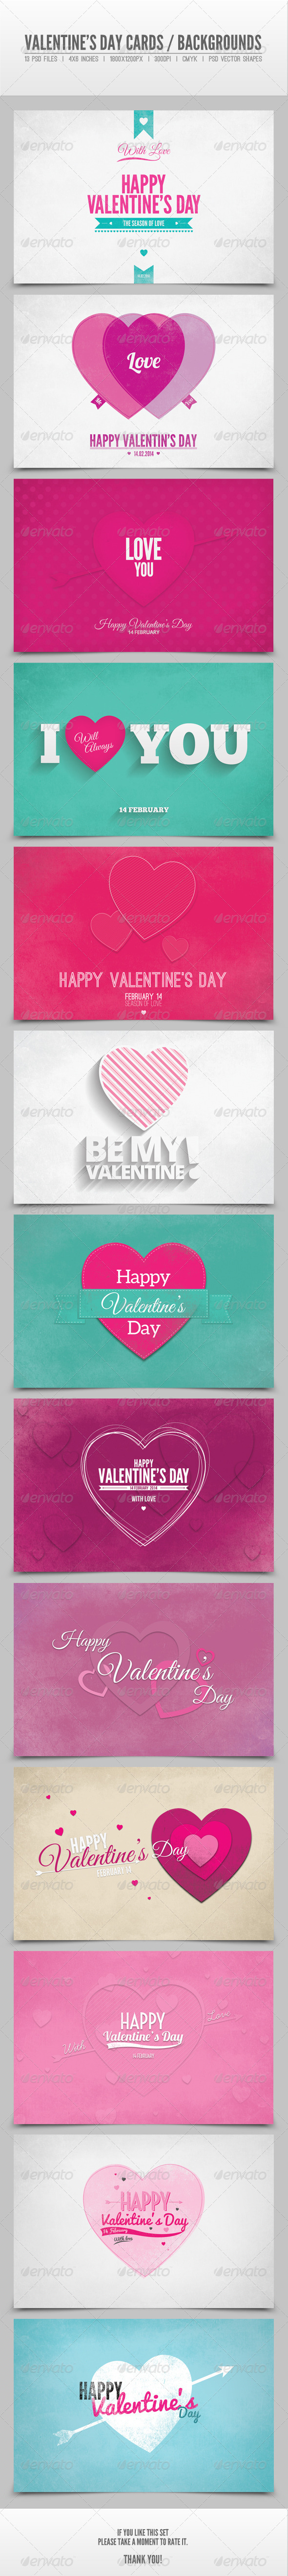 Valentine's Day Cards / Backgrounds Vol.3 - Backgrounds Graphics